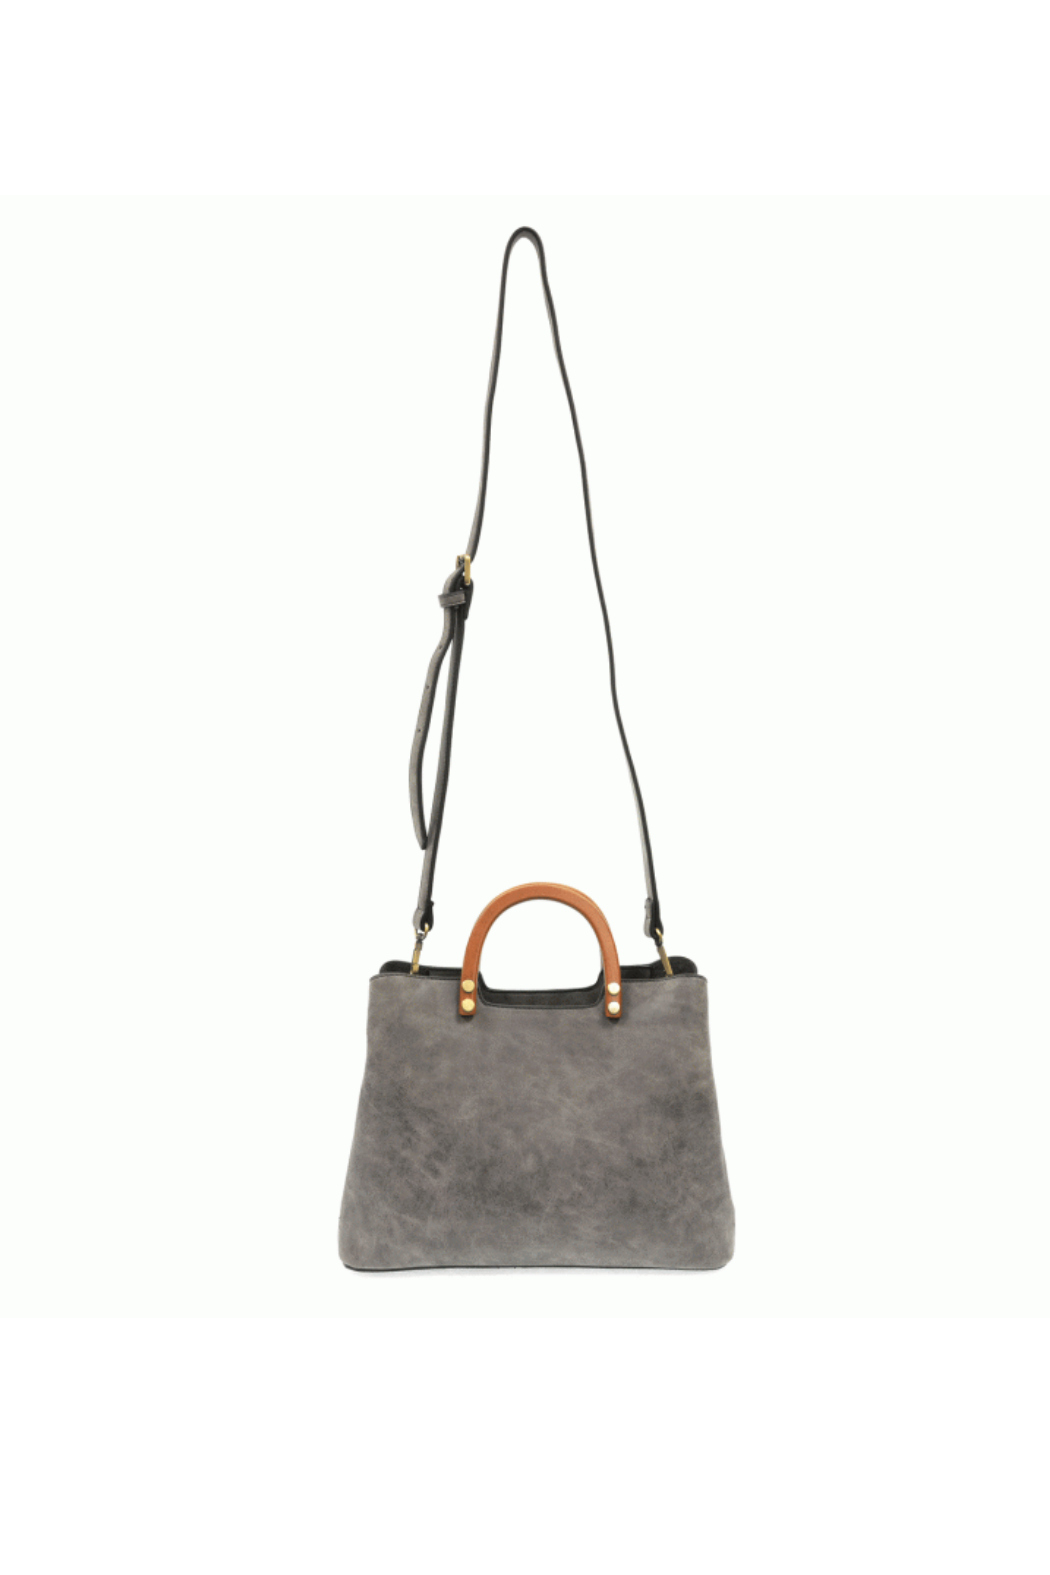 305b67fcdd Joy Susan Angie Vintage Satchel w Hood Handle from New Jersey by ...